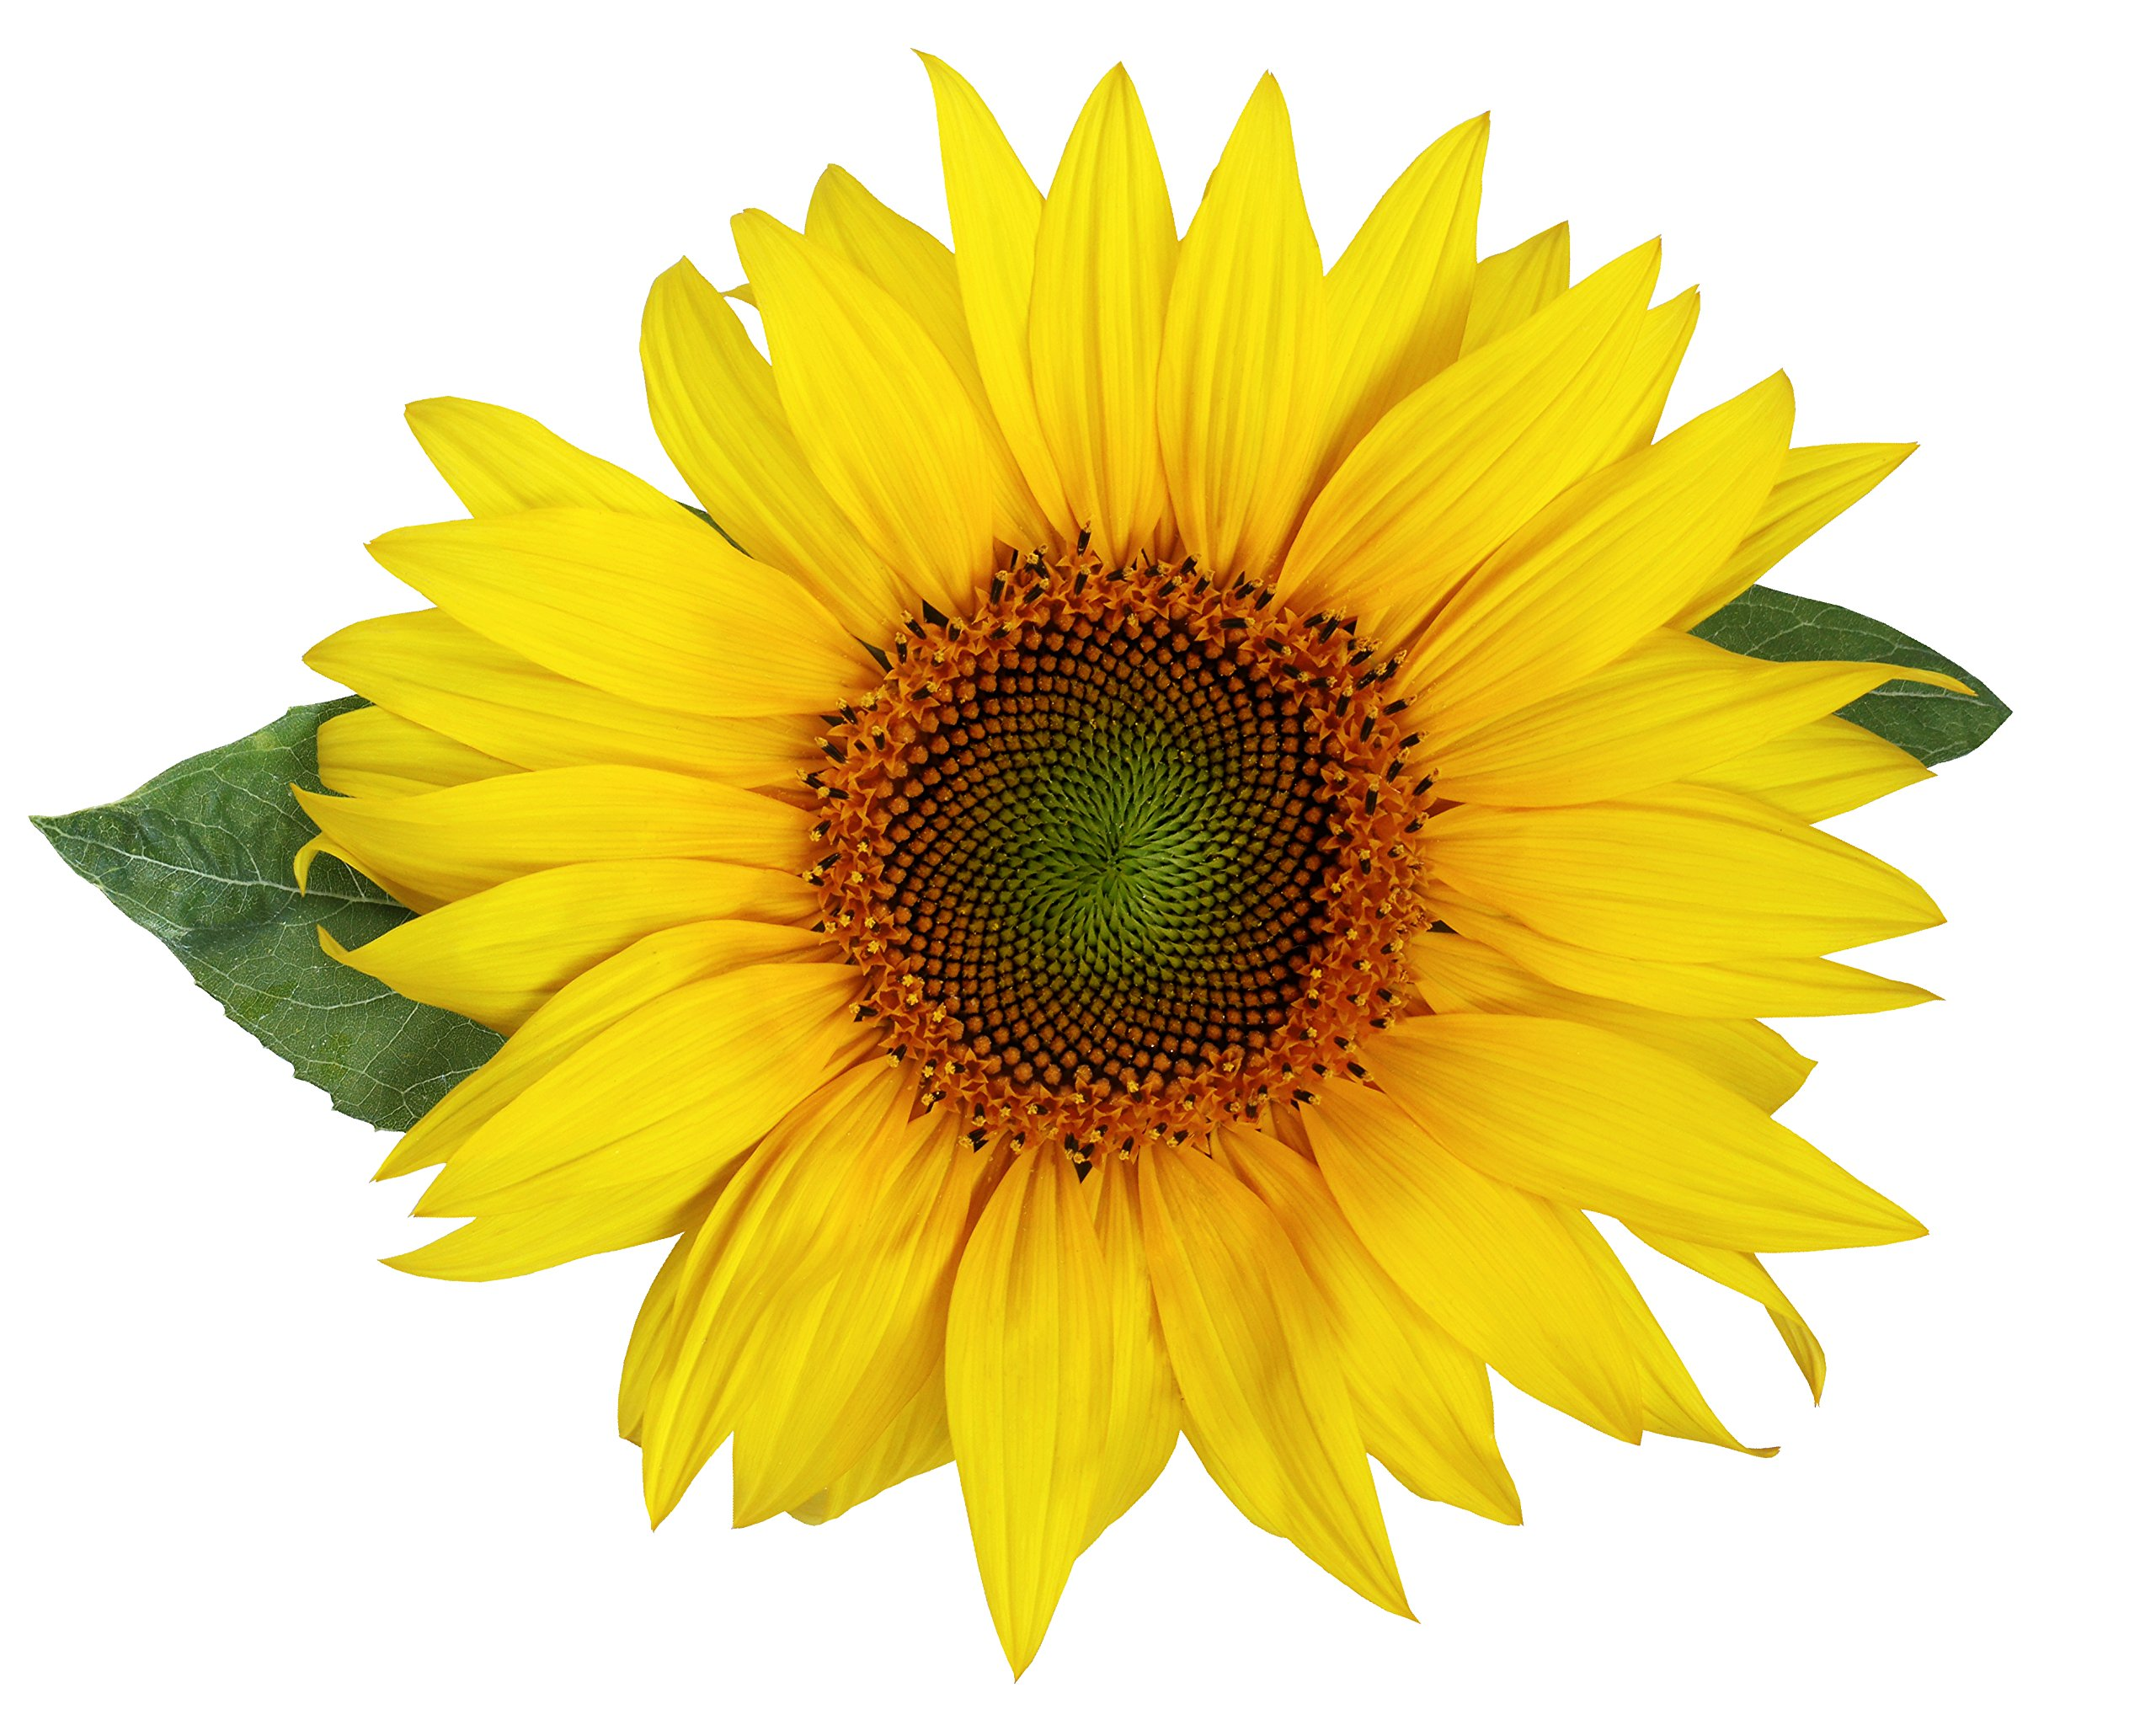 Quality Sunflower Grow Kit | Grow Your Own Unique Dwarf Sunflower from Seed in Just A Few Weeks | Unique Basalt Pot, Non-GMO Mother's Day Gardening Kit with Easy Instructions | by TotalGreen Holland (Image #4)